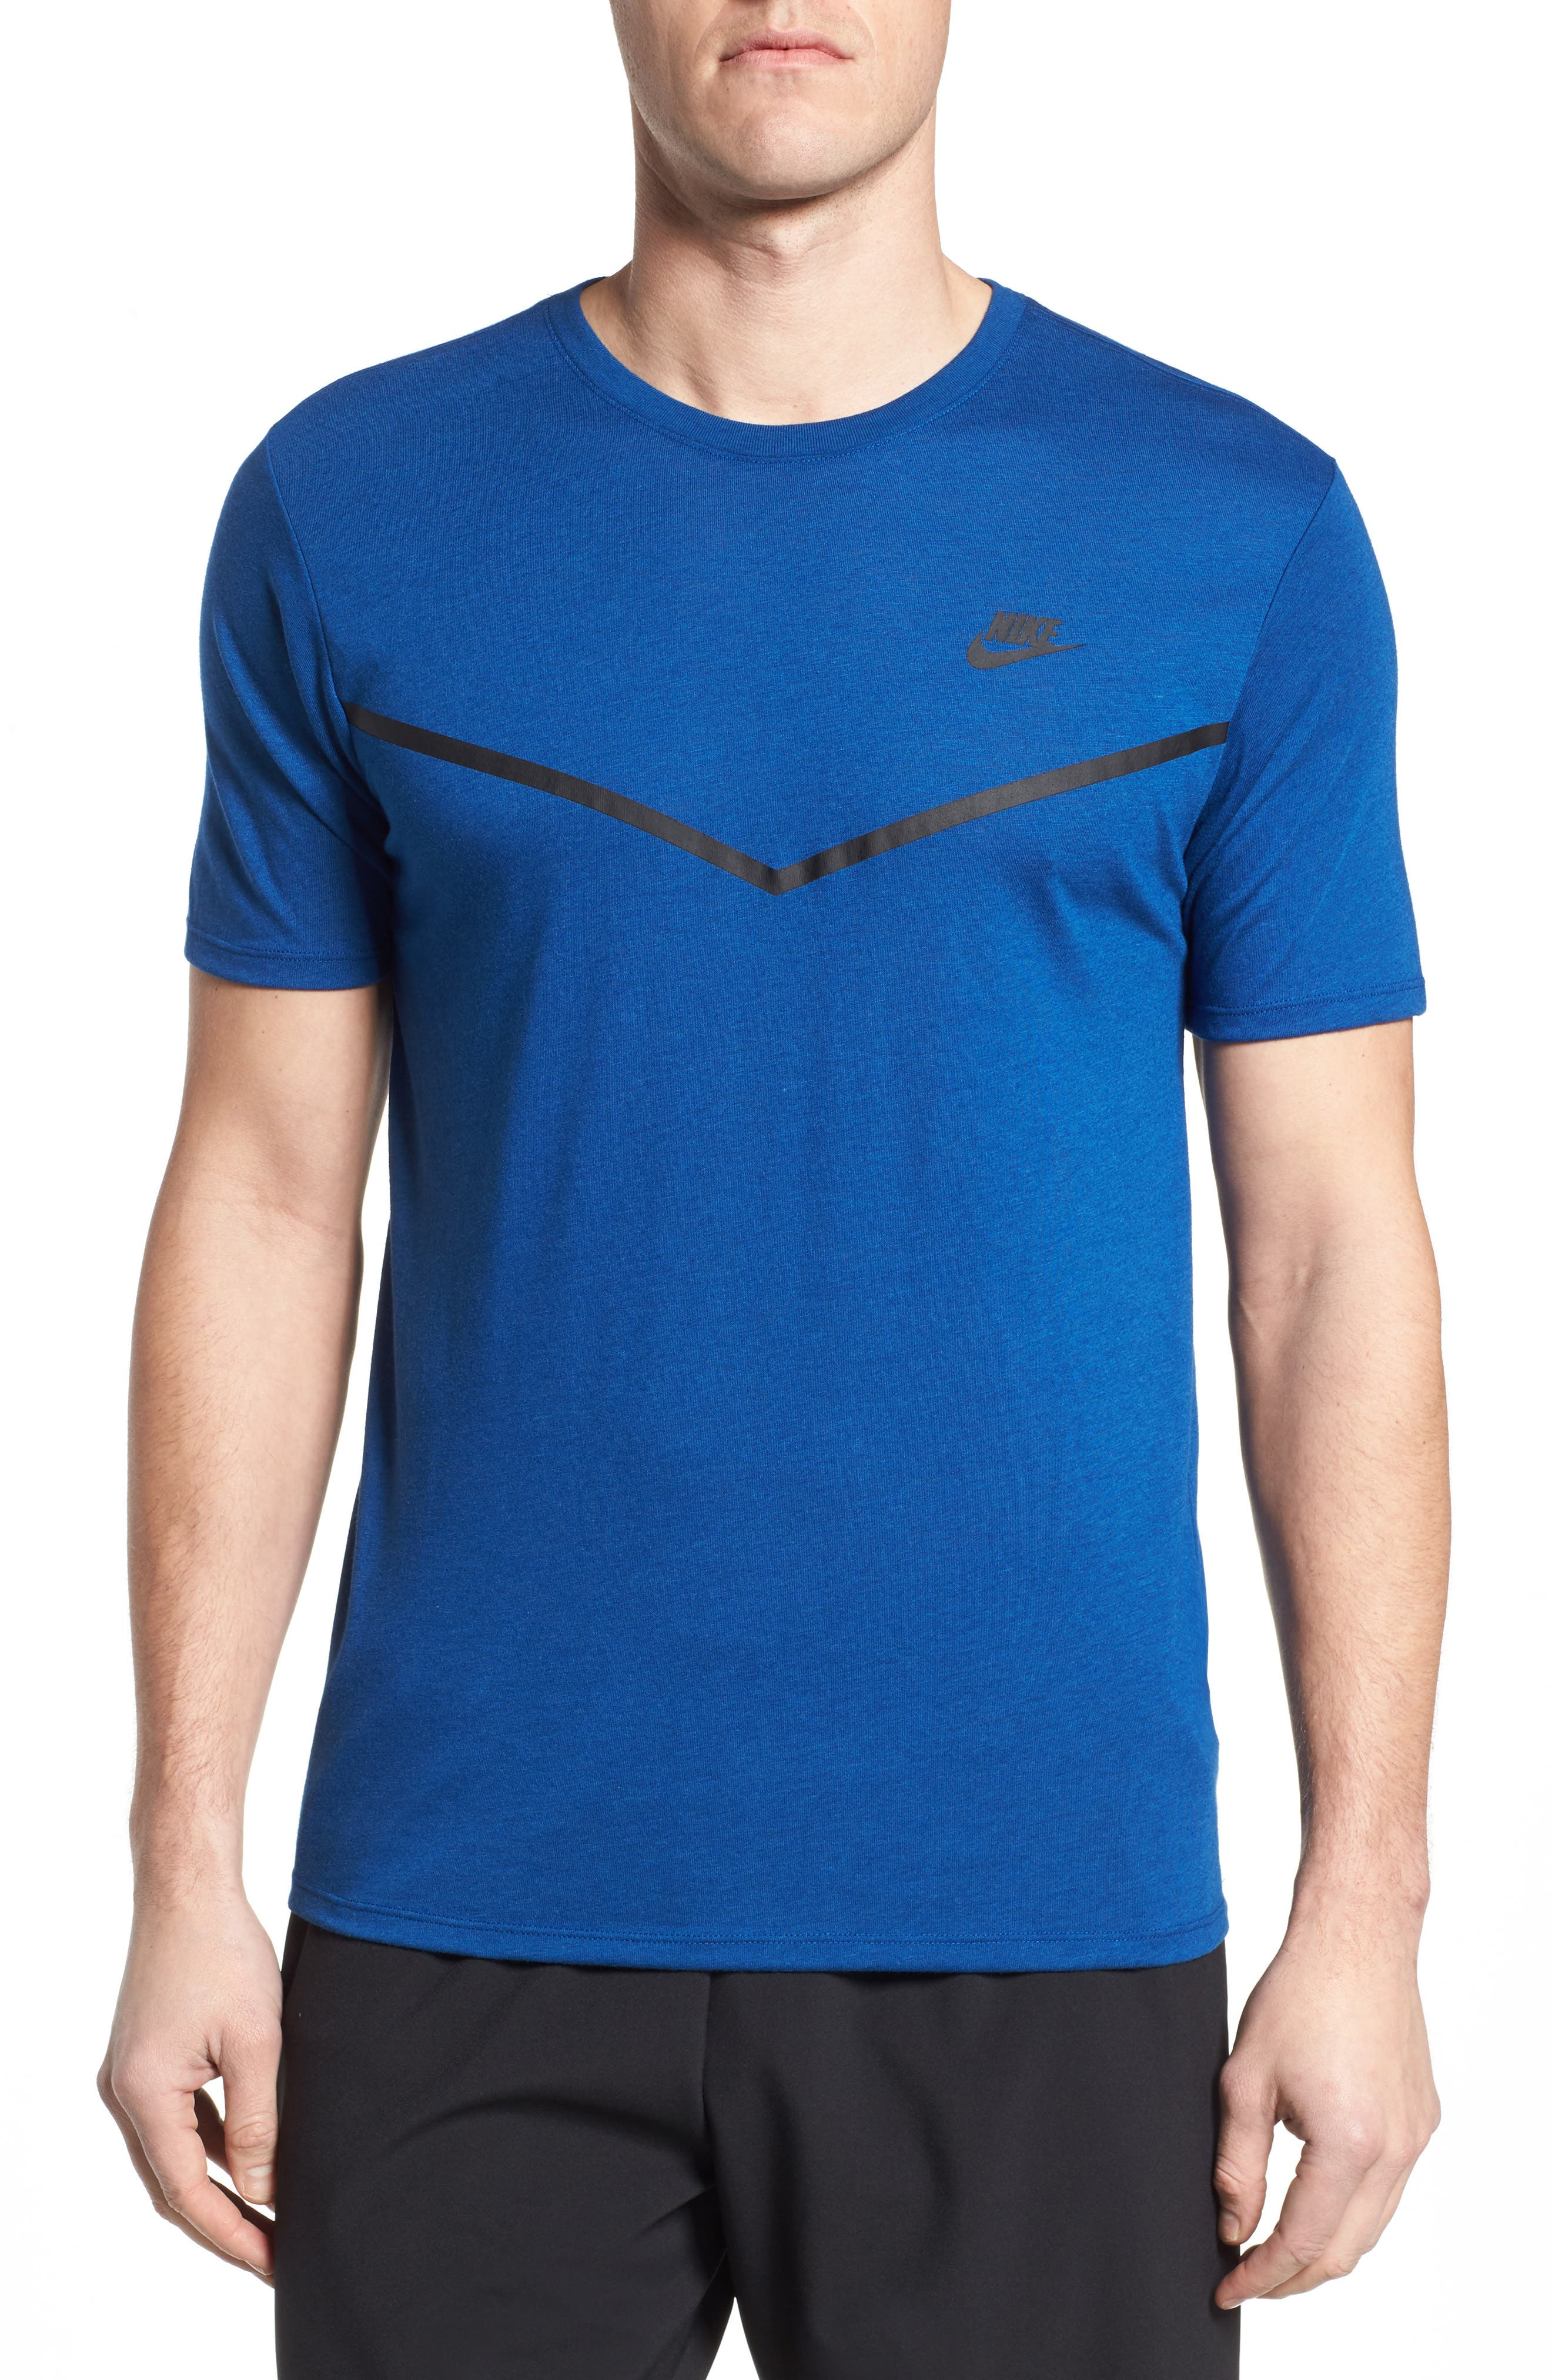 Main Image - Nike NSW TB Tech T-Shirt